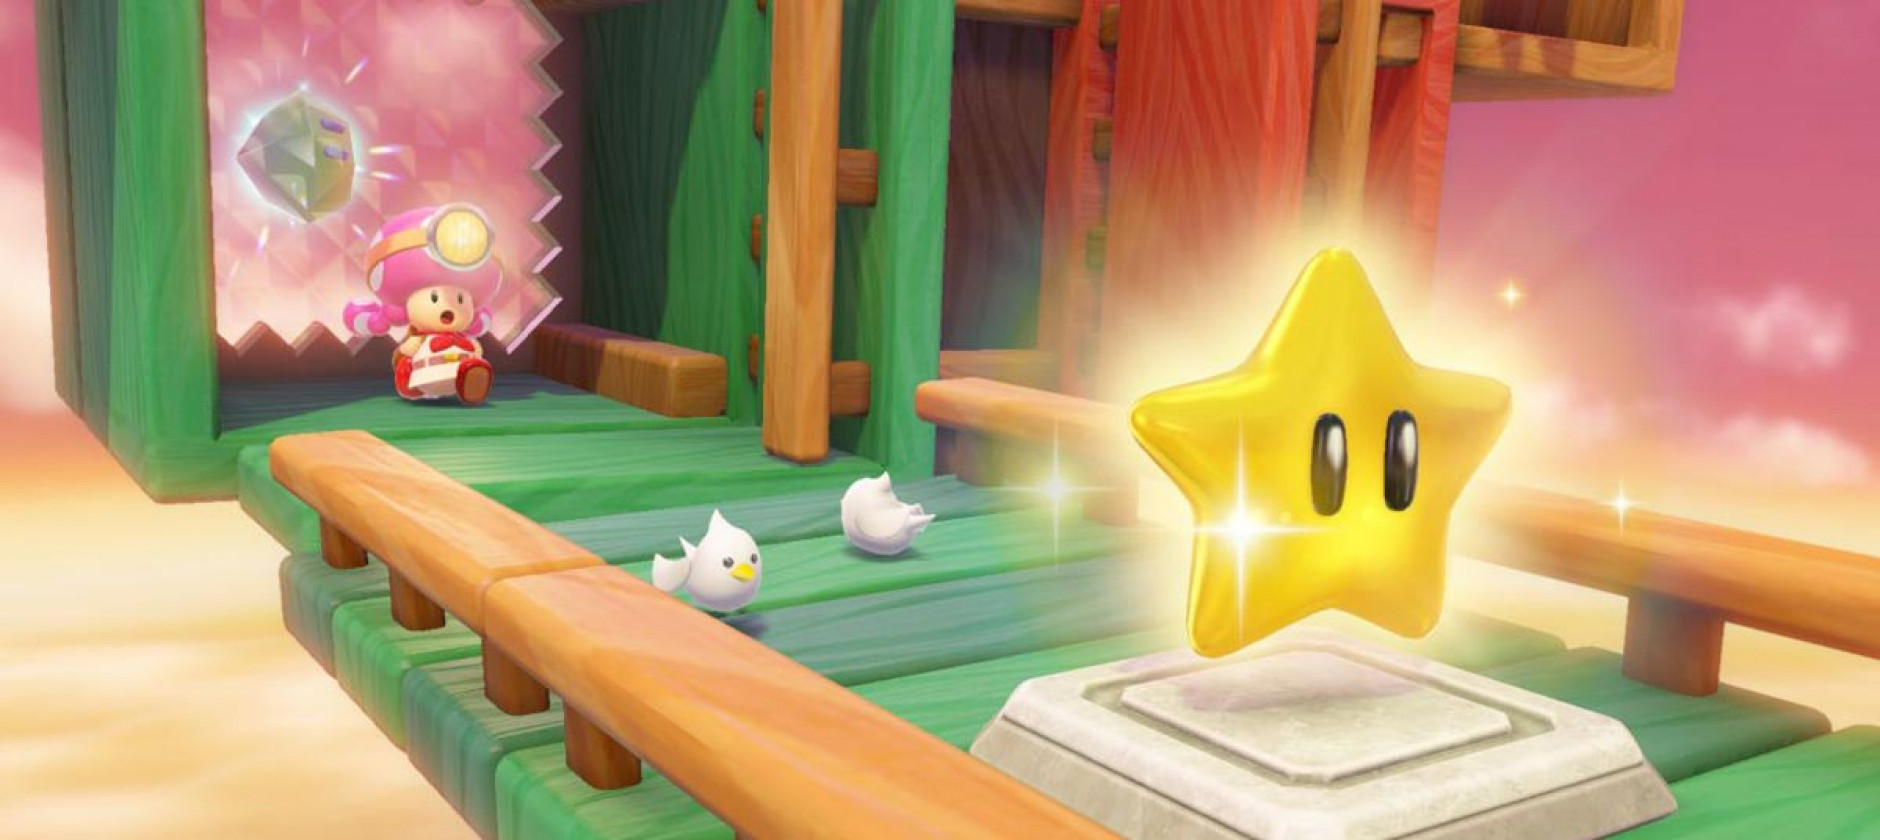 Captain Toad  Treasure Tracker, tanti enigmi da risolvere